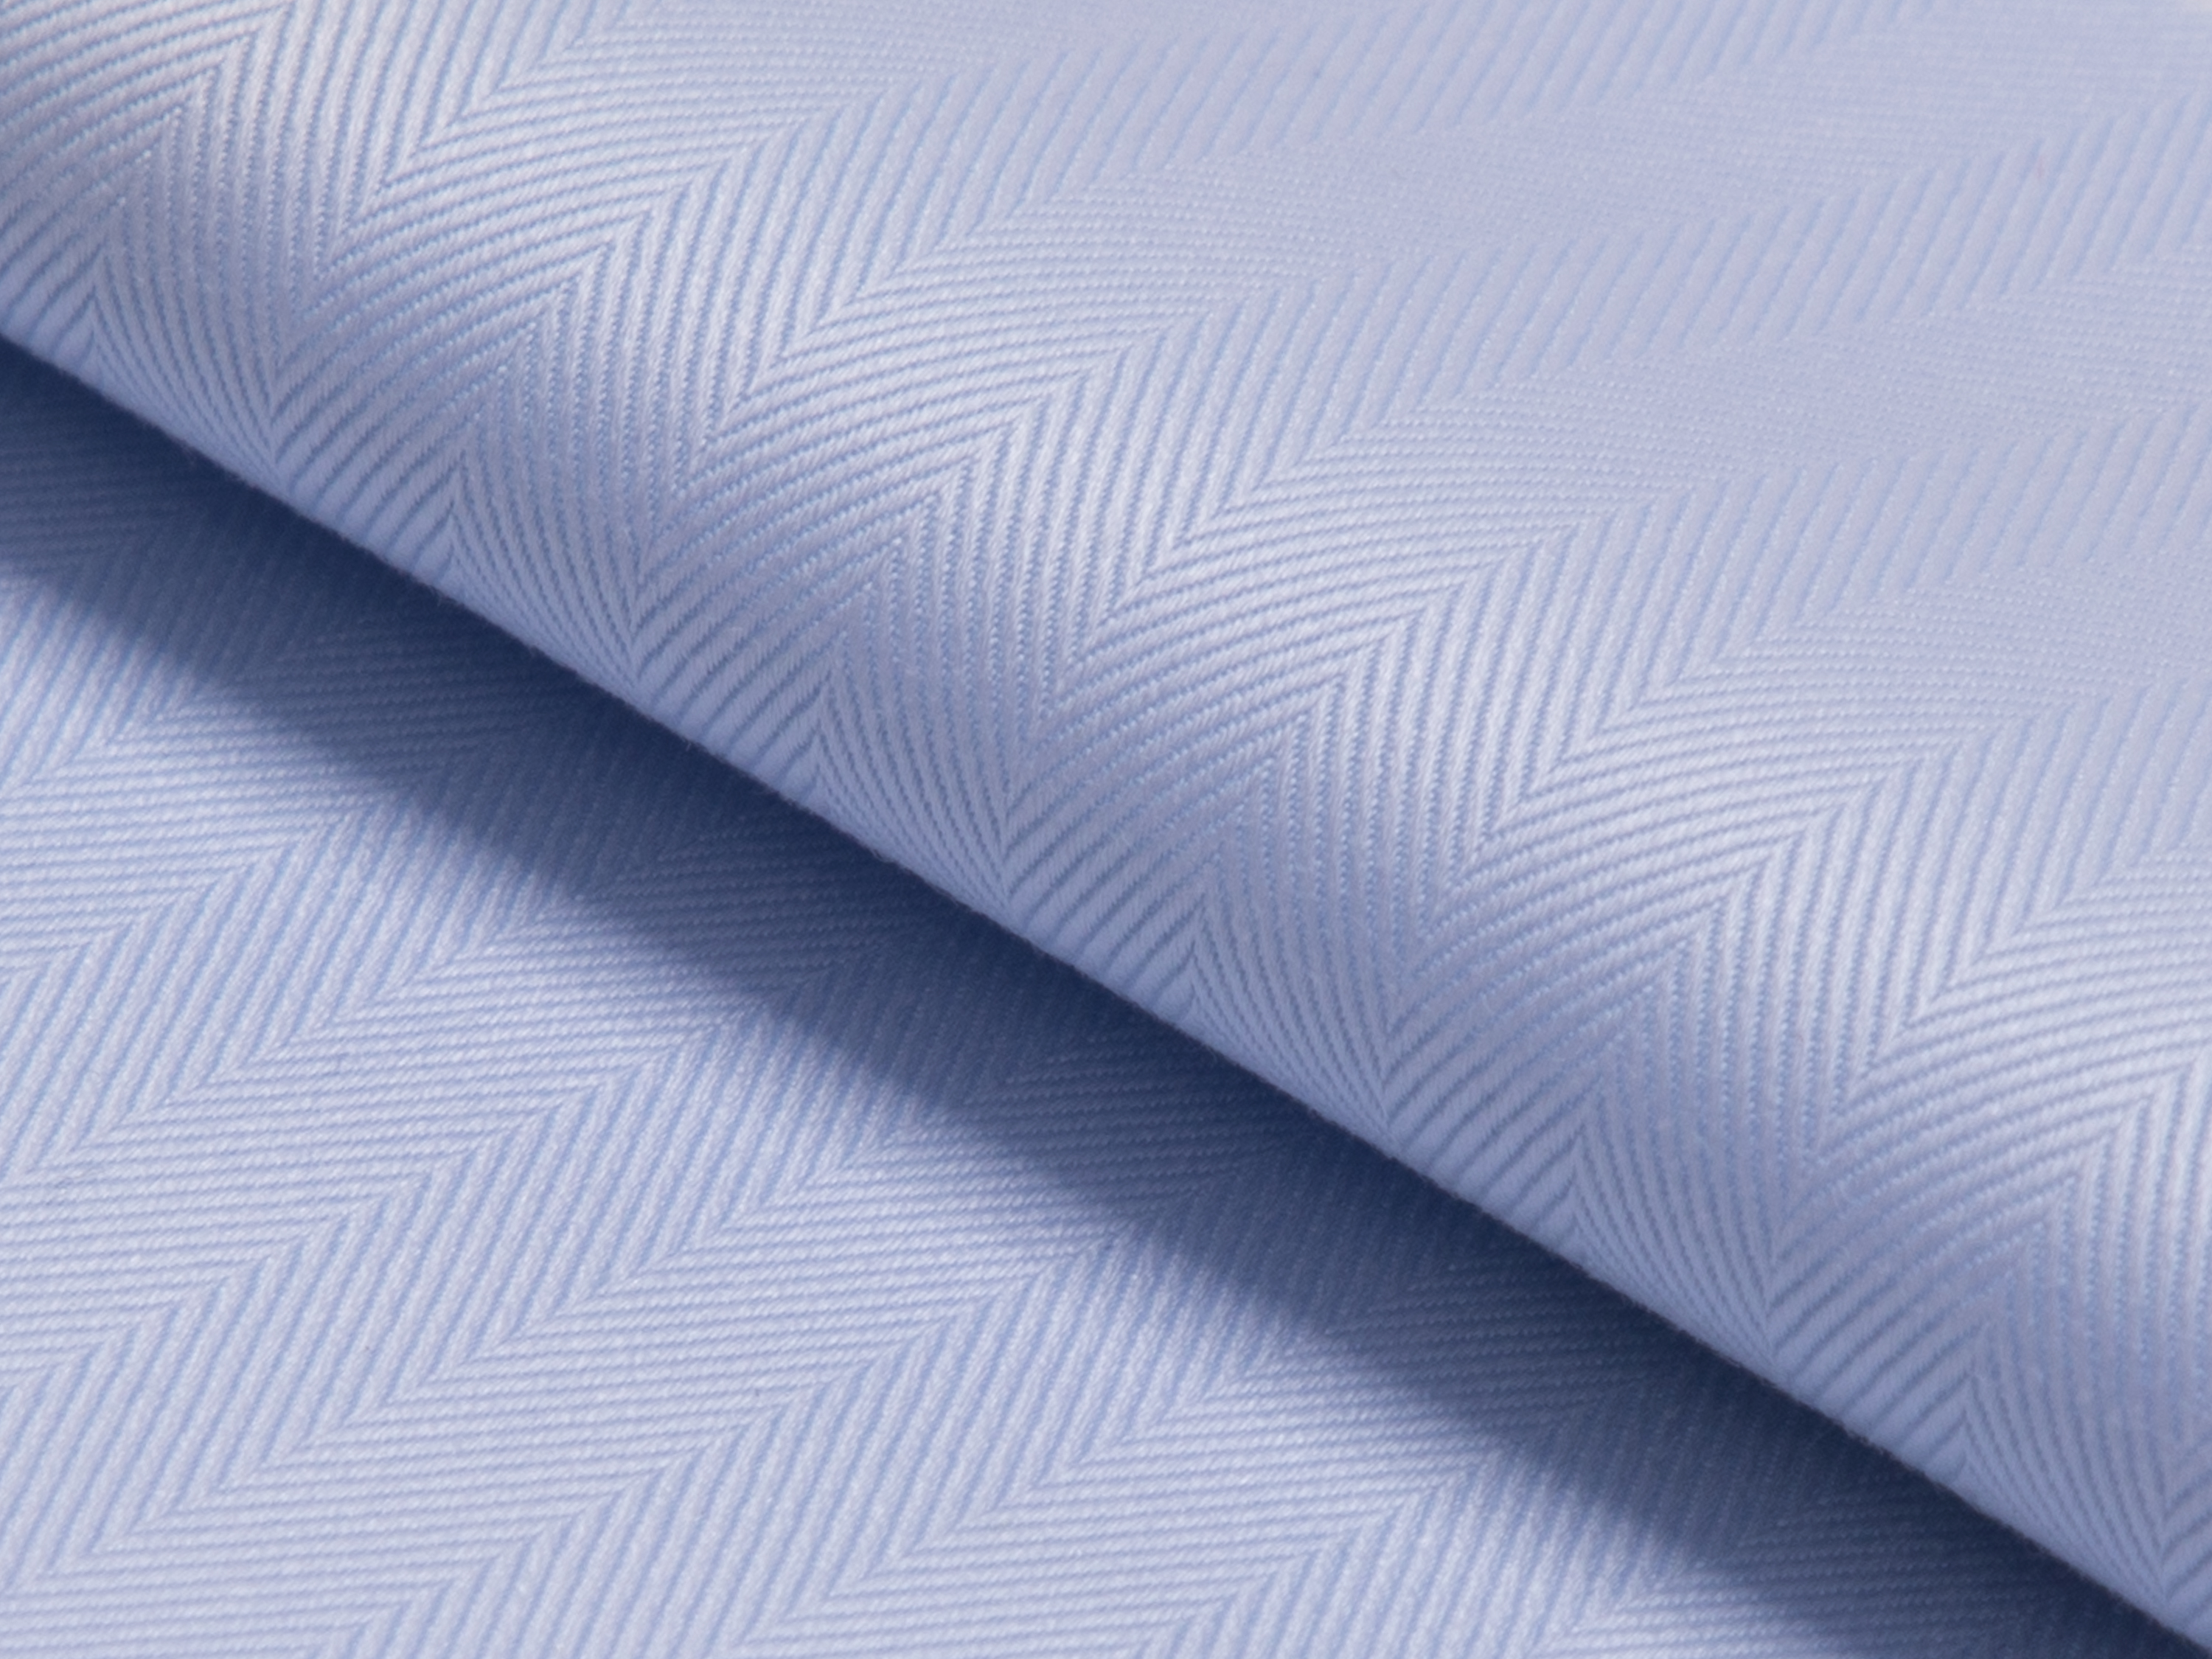 Buy tailor made shirts online - MAYFAIR - Herringbone Light Blue